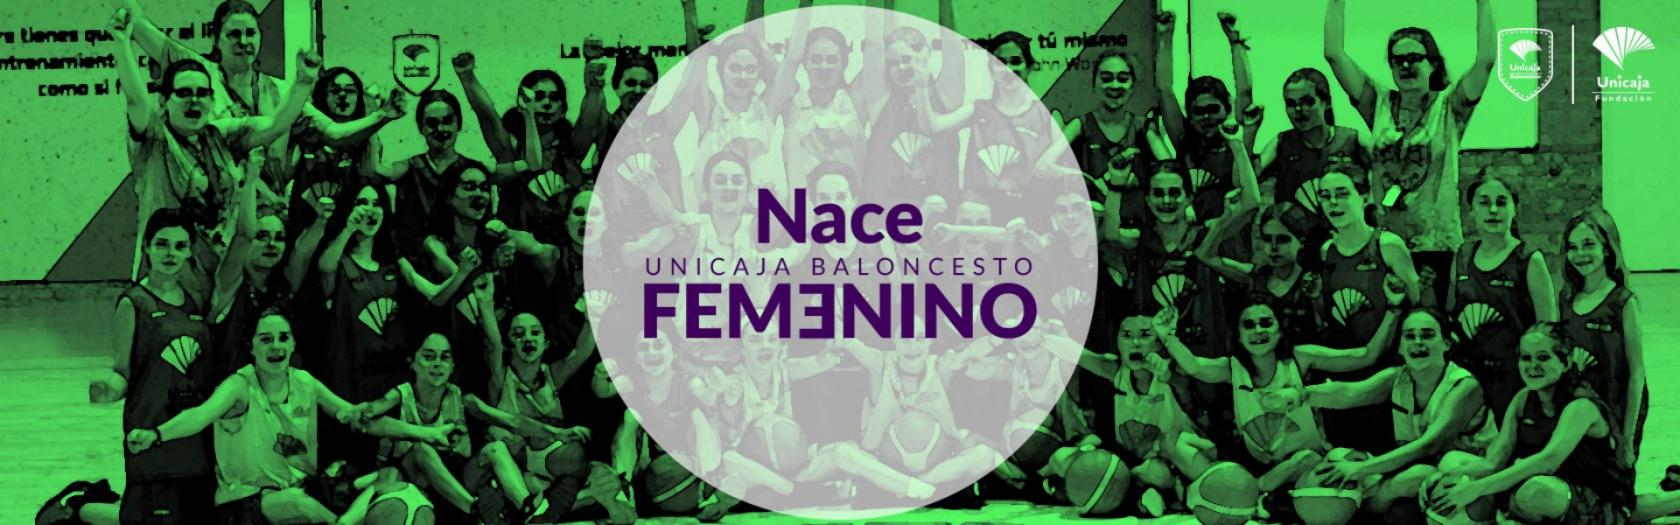 Unicaja Baloncesto Women is born